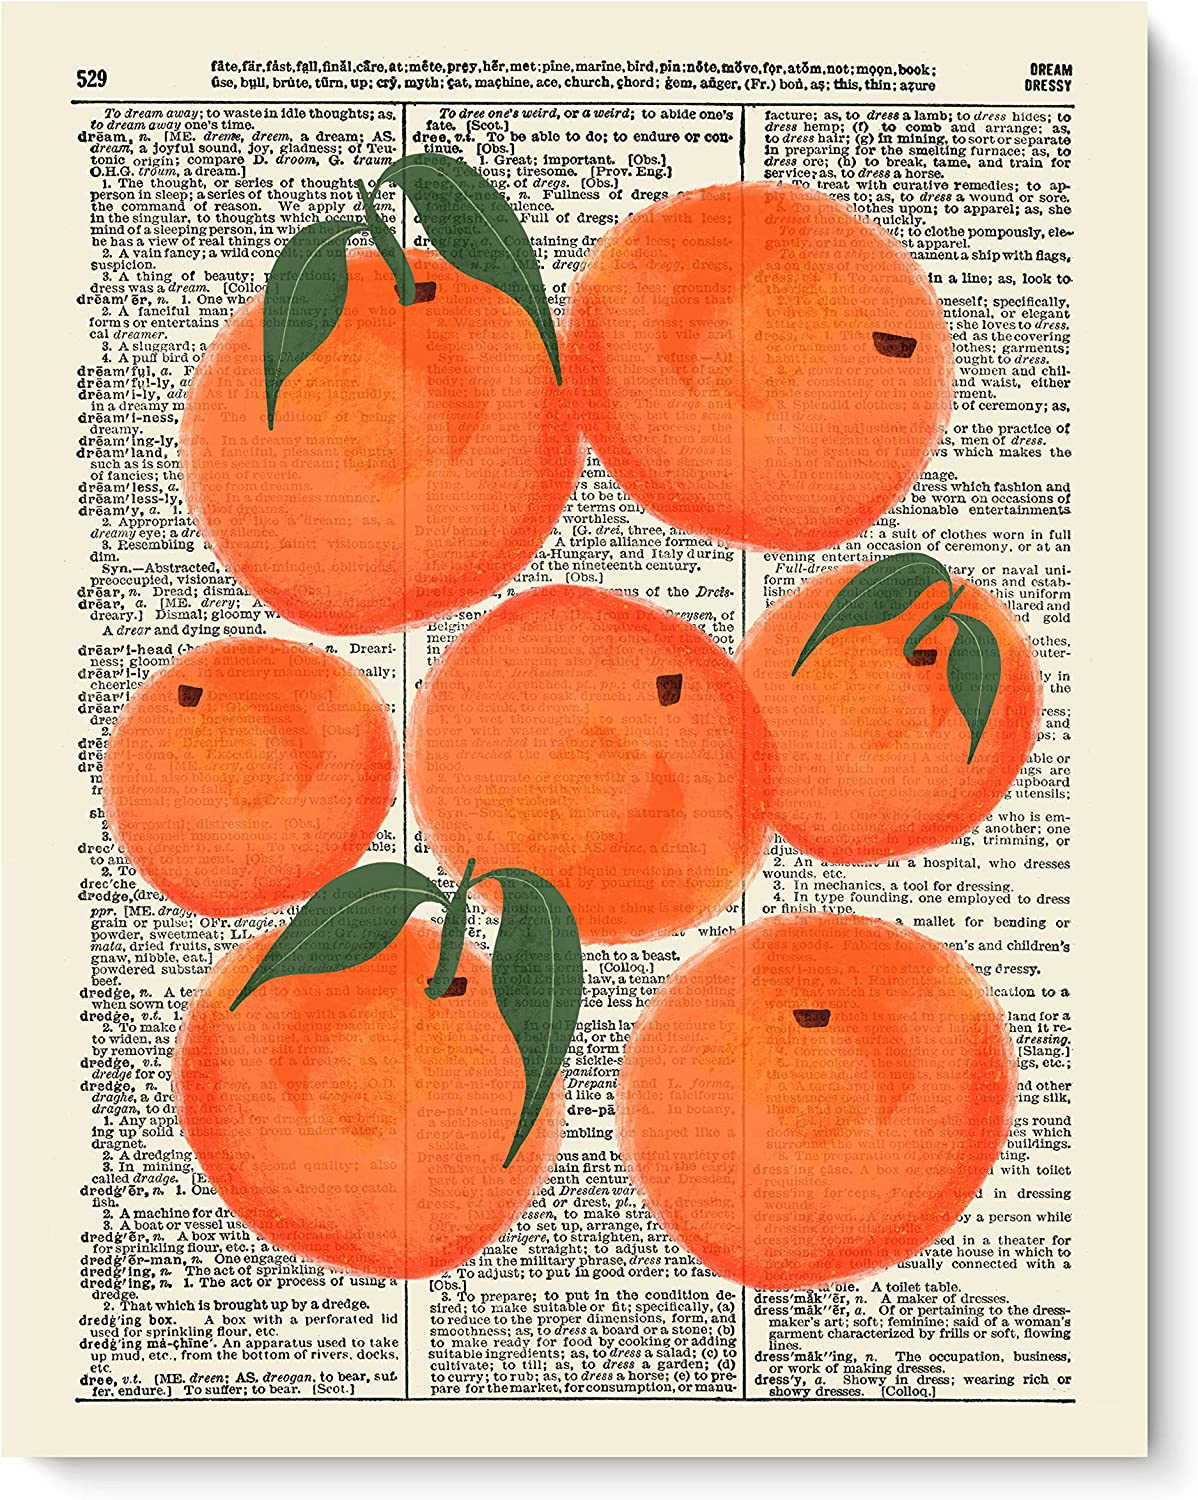 VintBo Oranges, Fruit Decor, Vintage Dictionary Art Print, Modern Contemporary Wall Art for Kitchen and Home Decor, Boho Art Print Poster, Country Farmhouse Wall Decor 8x10 Inches, Unframed